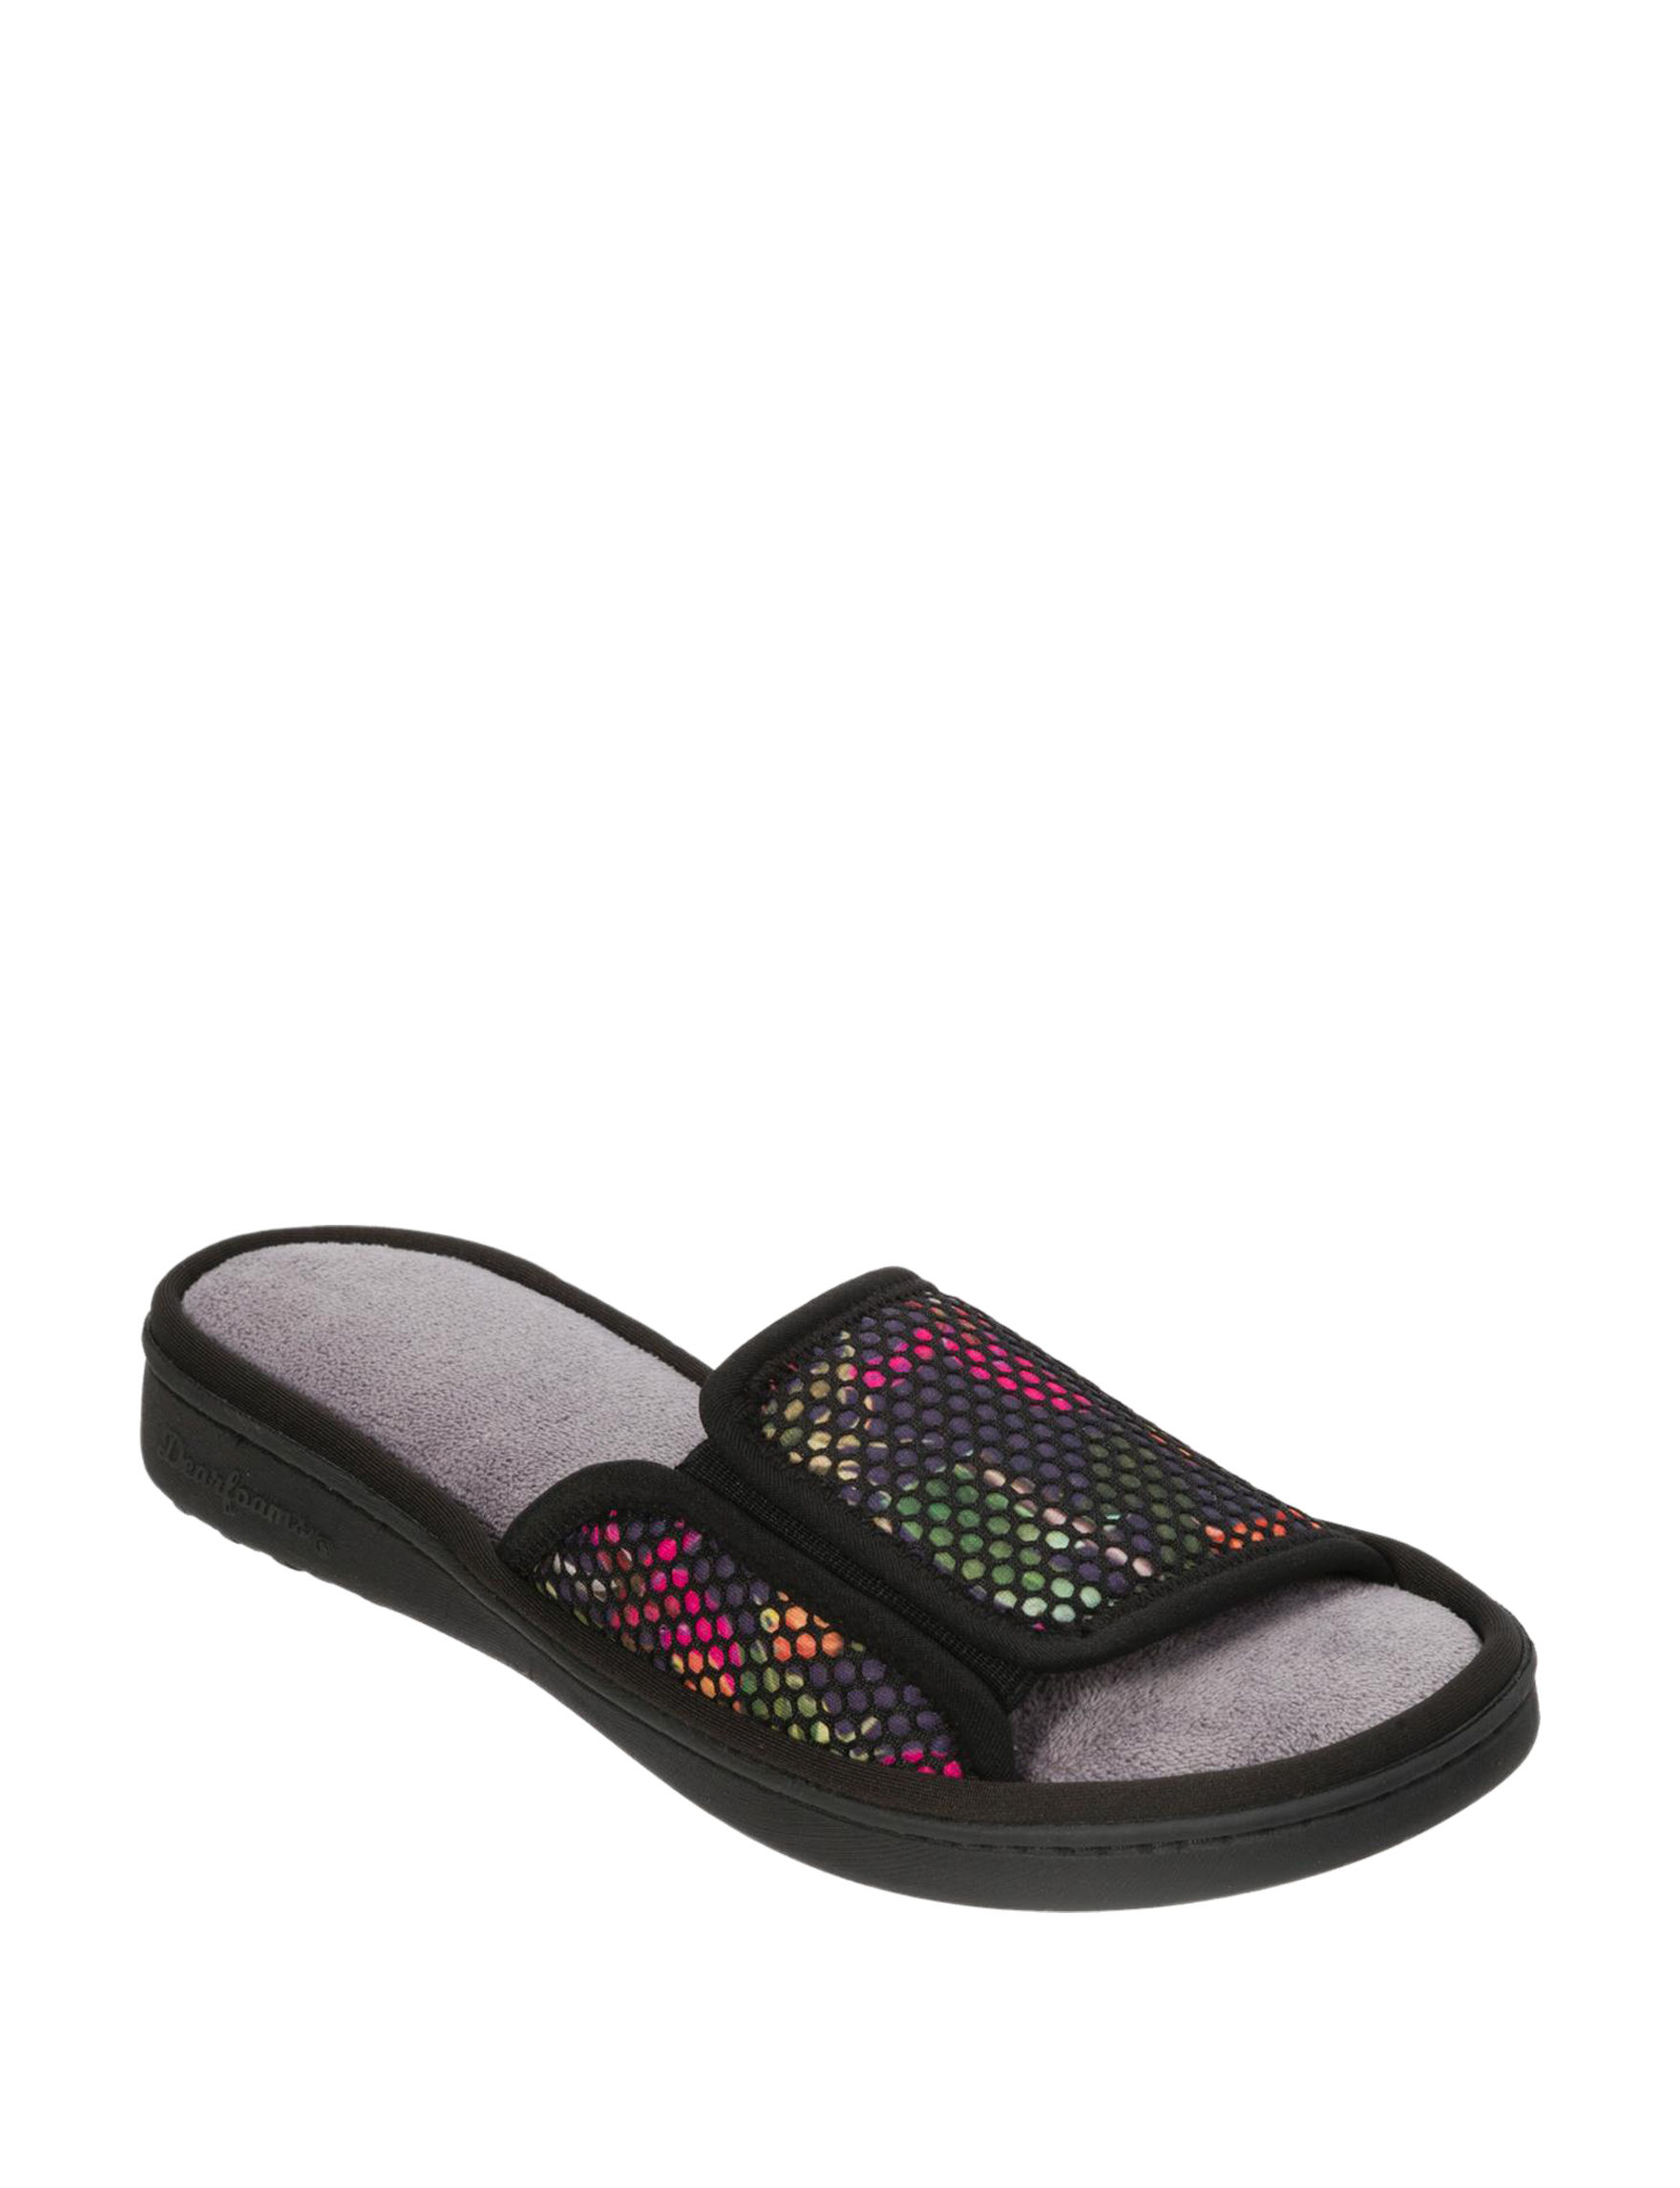 Dearfoams Black Slipper Sandals